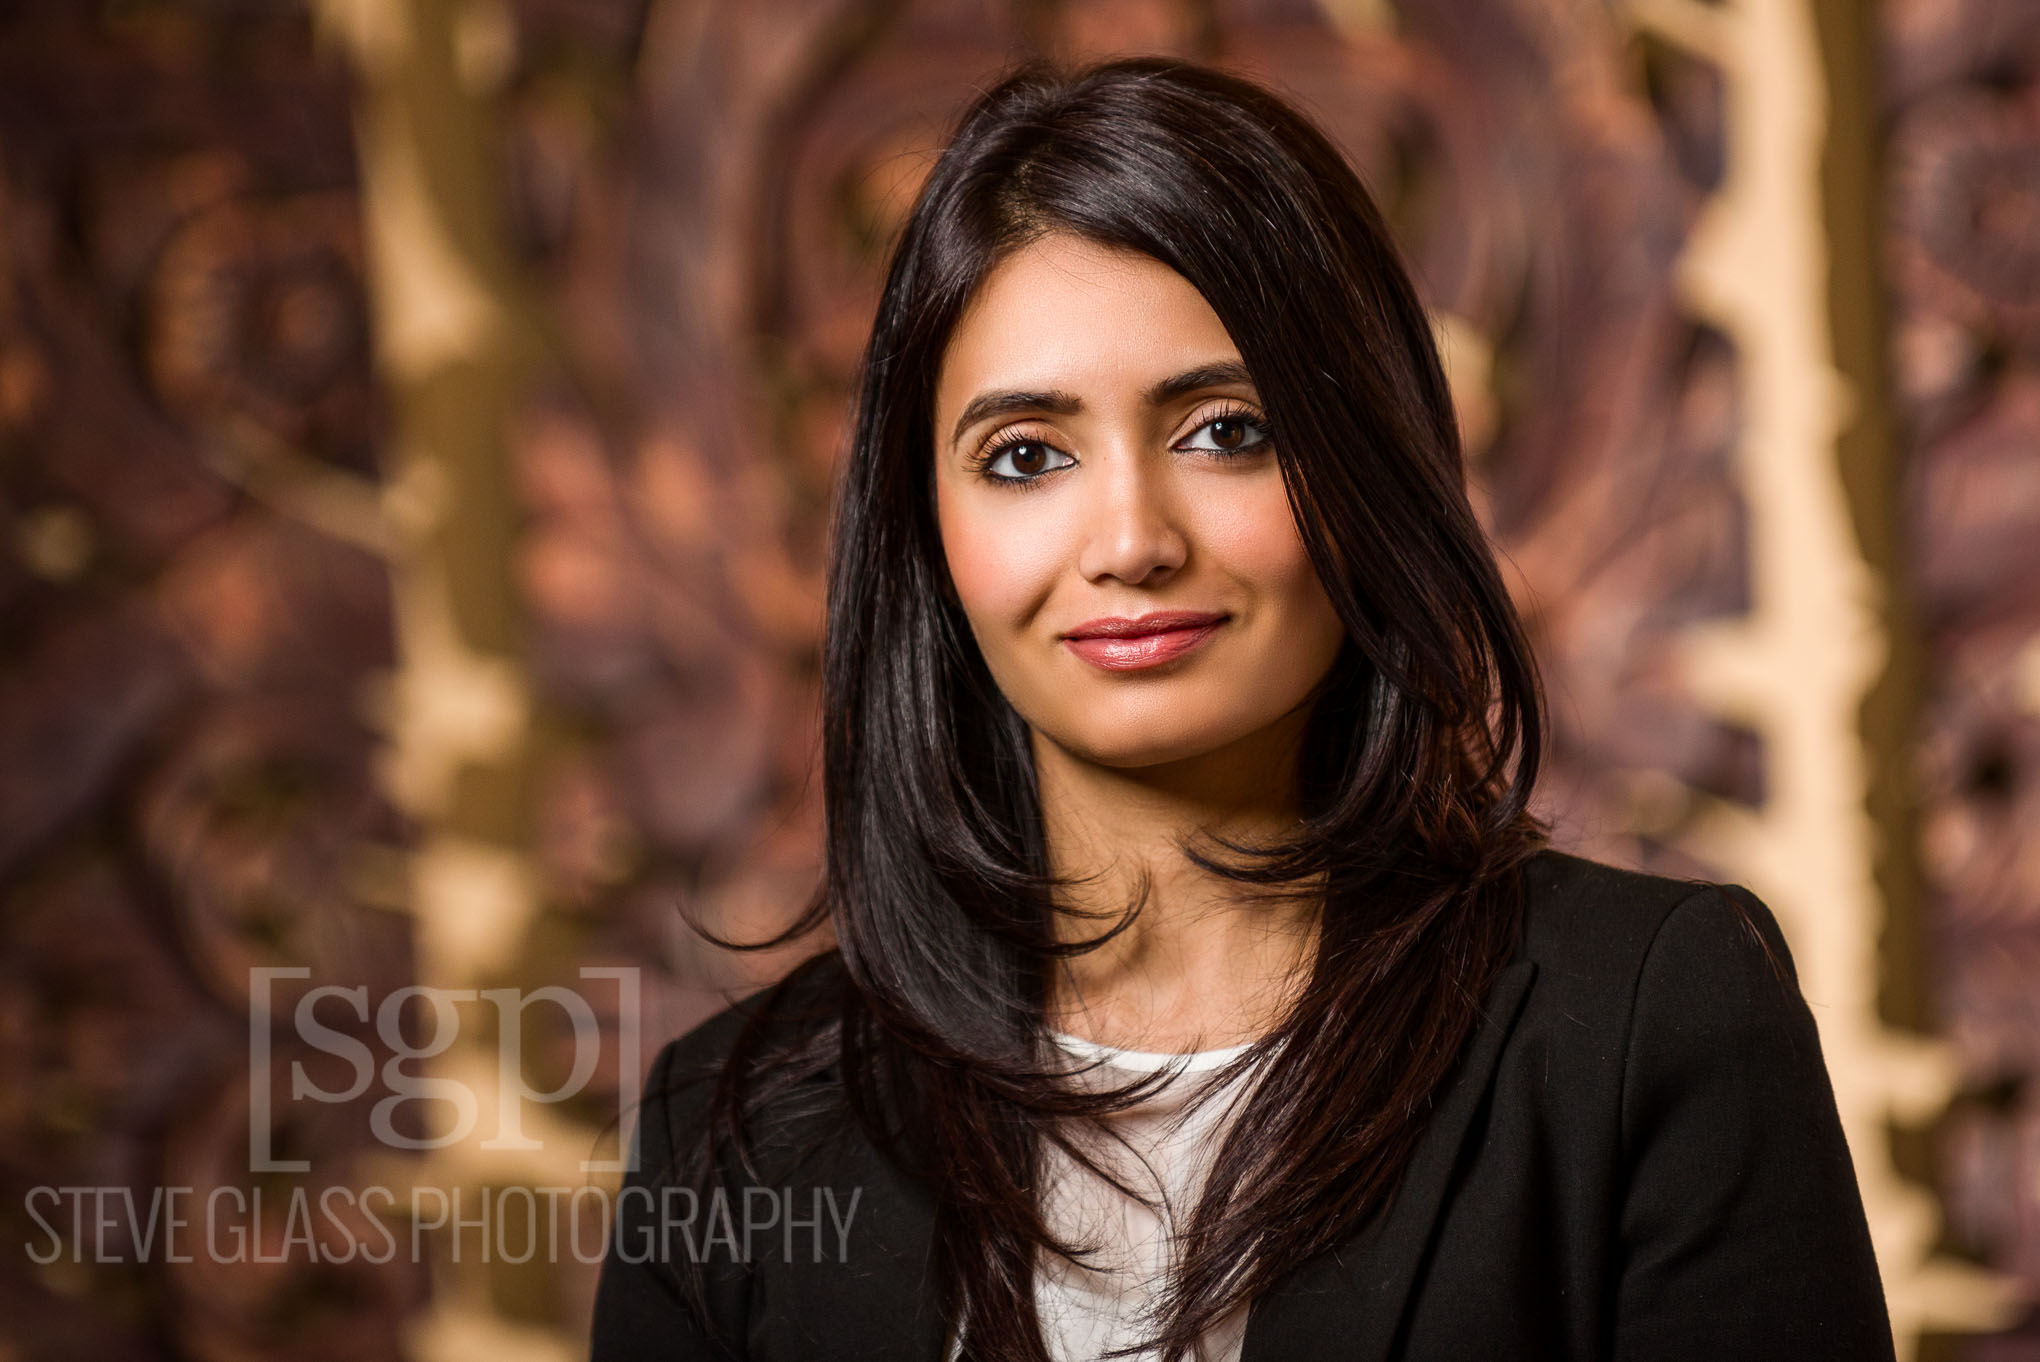 Dentist & Lawyer Professional Headshots